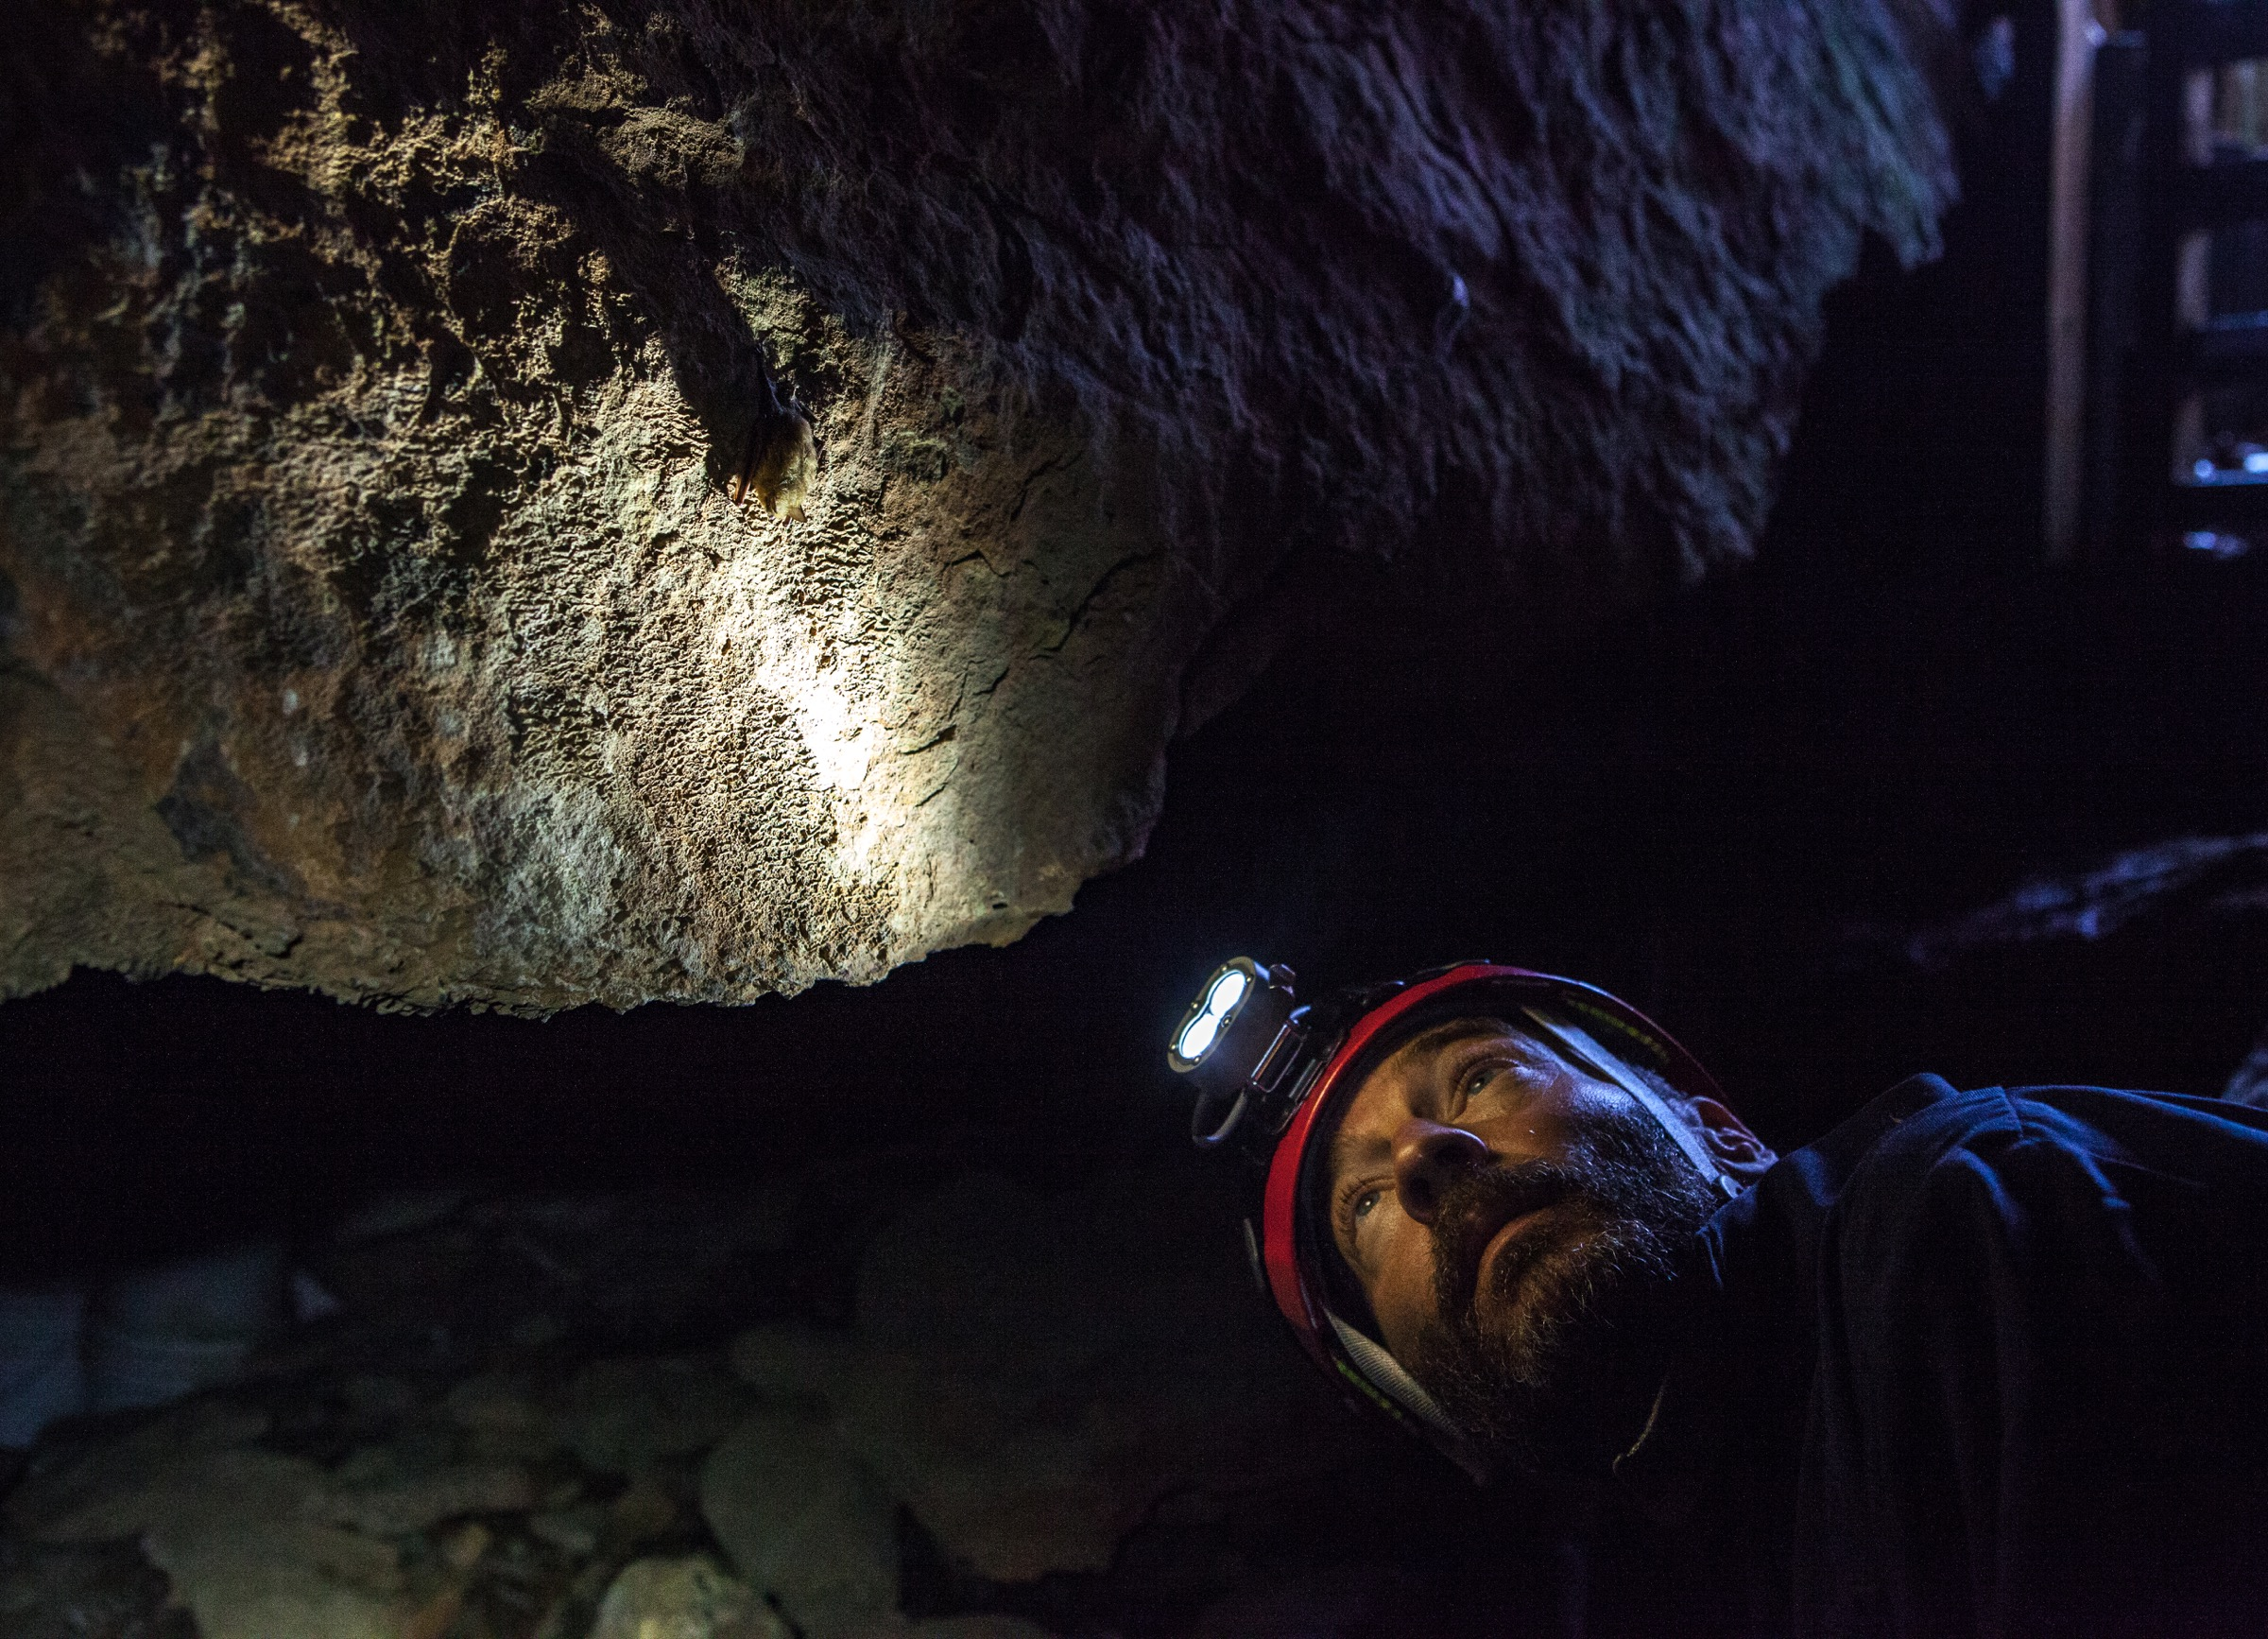 Richard Stark, a biologist with the U.S. Fish and Wildlife Service, examines a tricolored bat (Perimyotis subflavus) near the entrance of the cave. Photograph by Geoffrey Giller